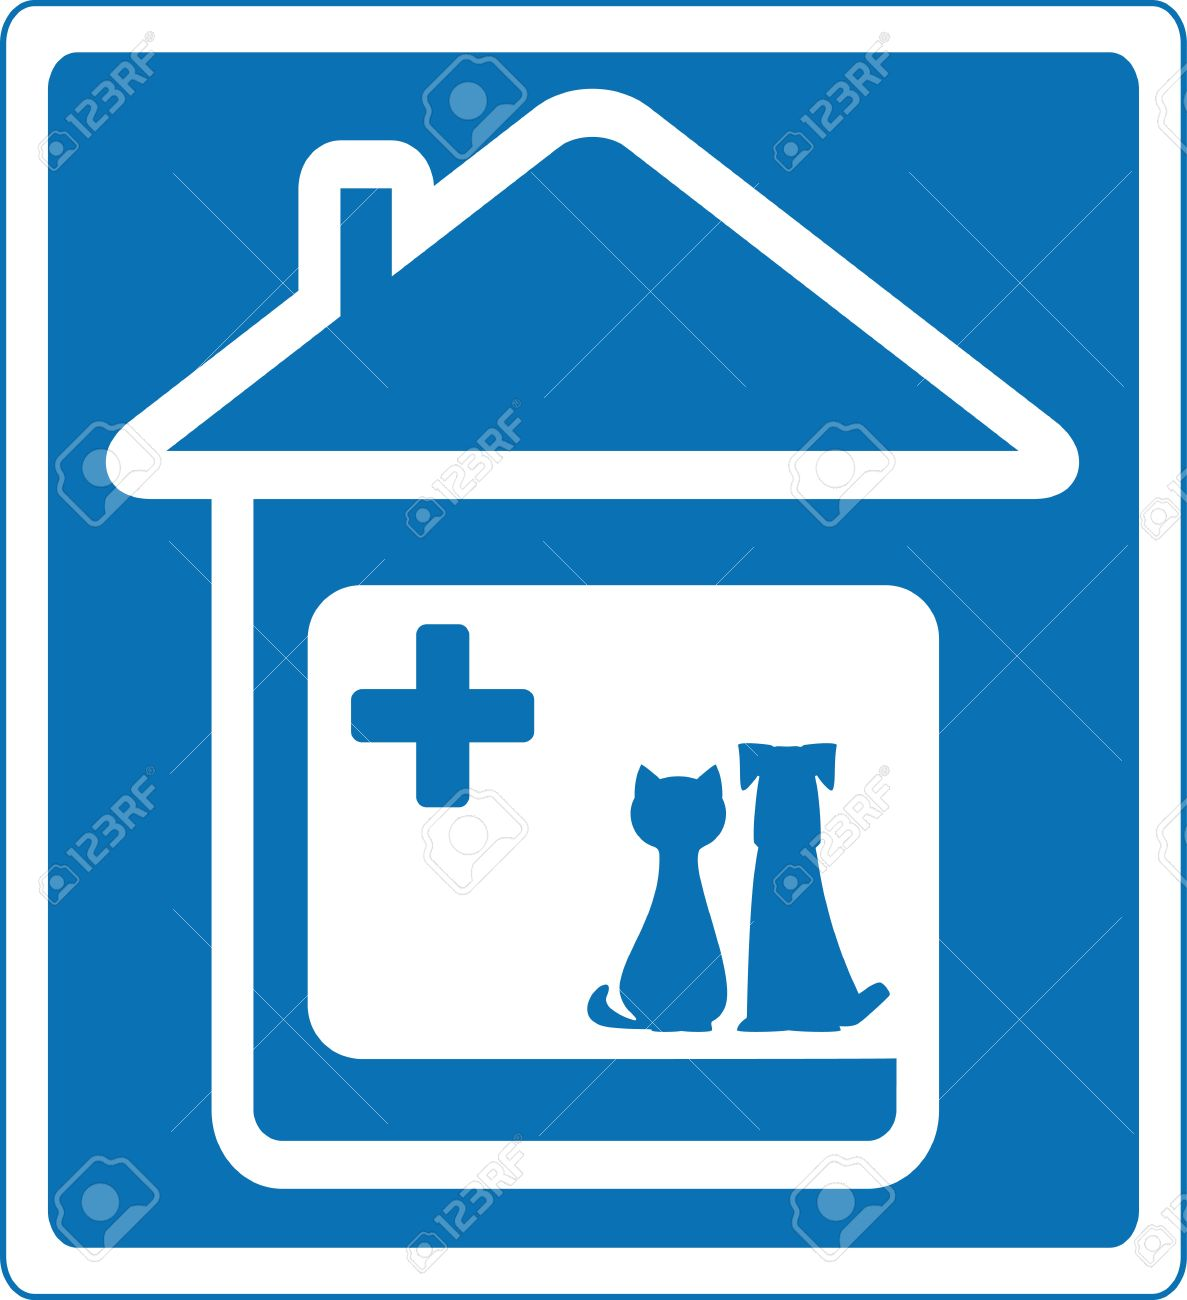 Vet clinic clipart clip black and white stock veterinary clinic: blue | Clipart Panda - Free Clipart Images clip black and white stock